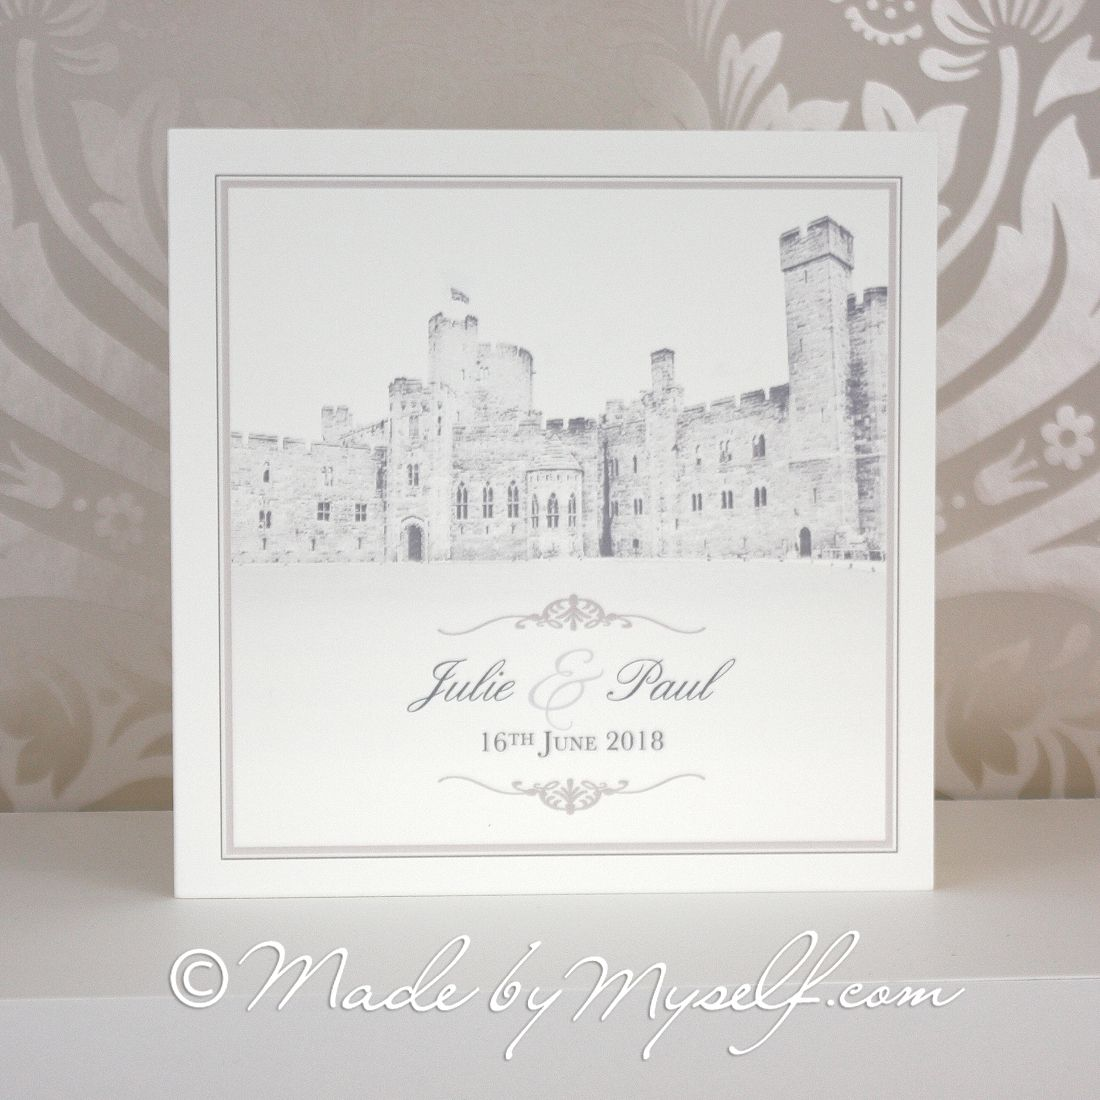 Wedding Invitations Castle Hill: Peckforton Castle Printed Border Wedding Invitation